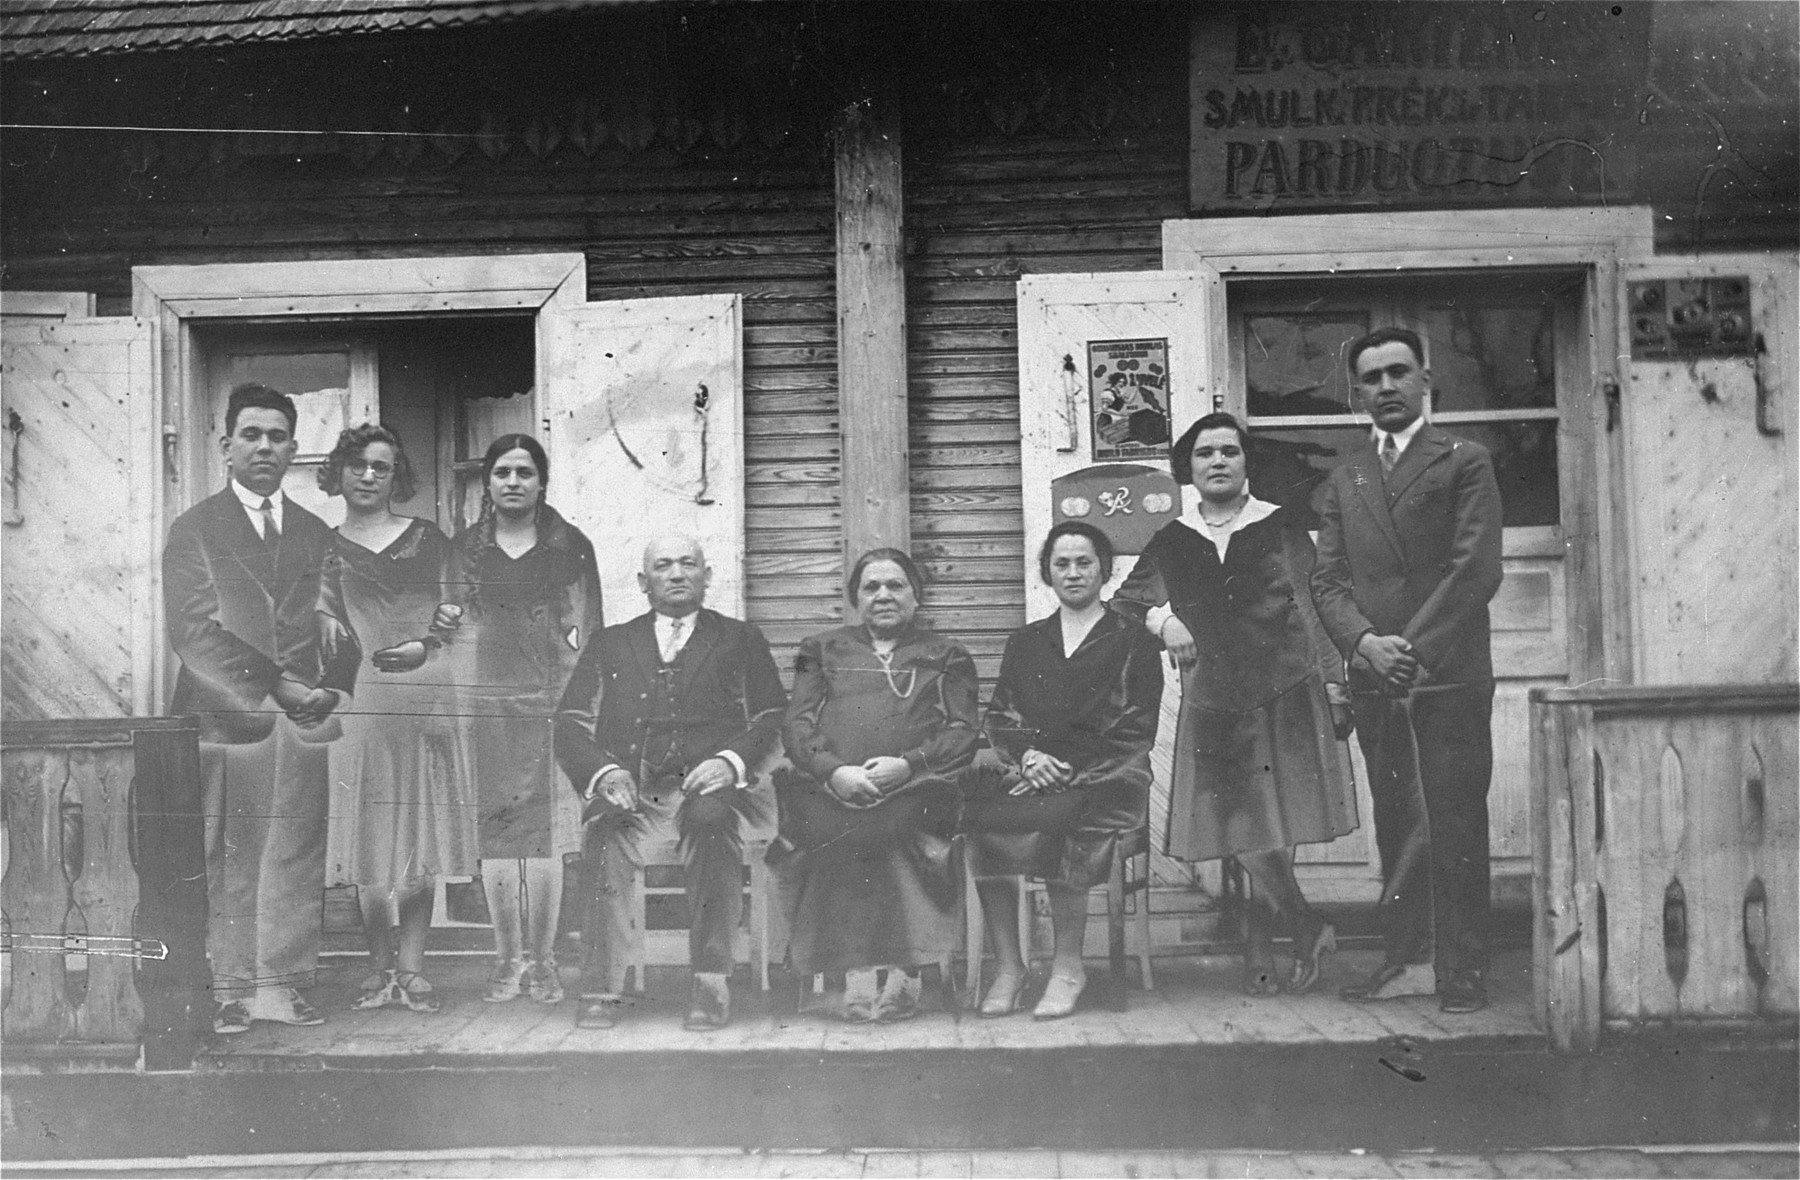 Group portrait of the Gar family in front of the grandmother's home in Kron, Lithuania.  Pictured from left to right are: Joseph Gar, unknown, unknown;  David Gar; Esther Gar; unknown, Chaya Gar; Jacob Gar.